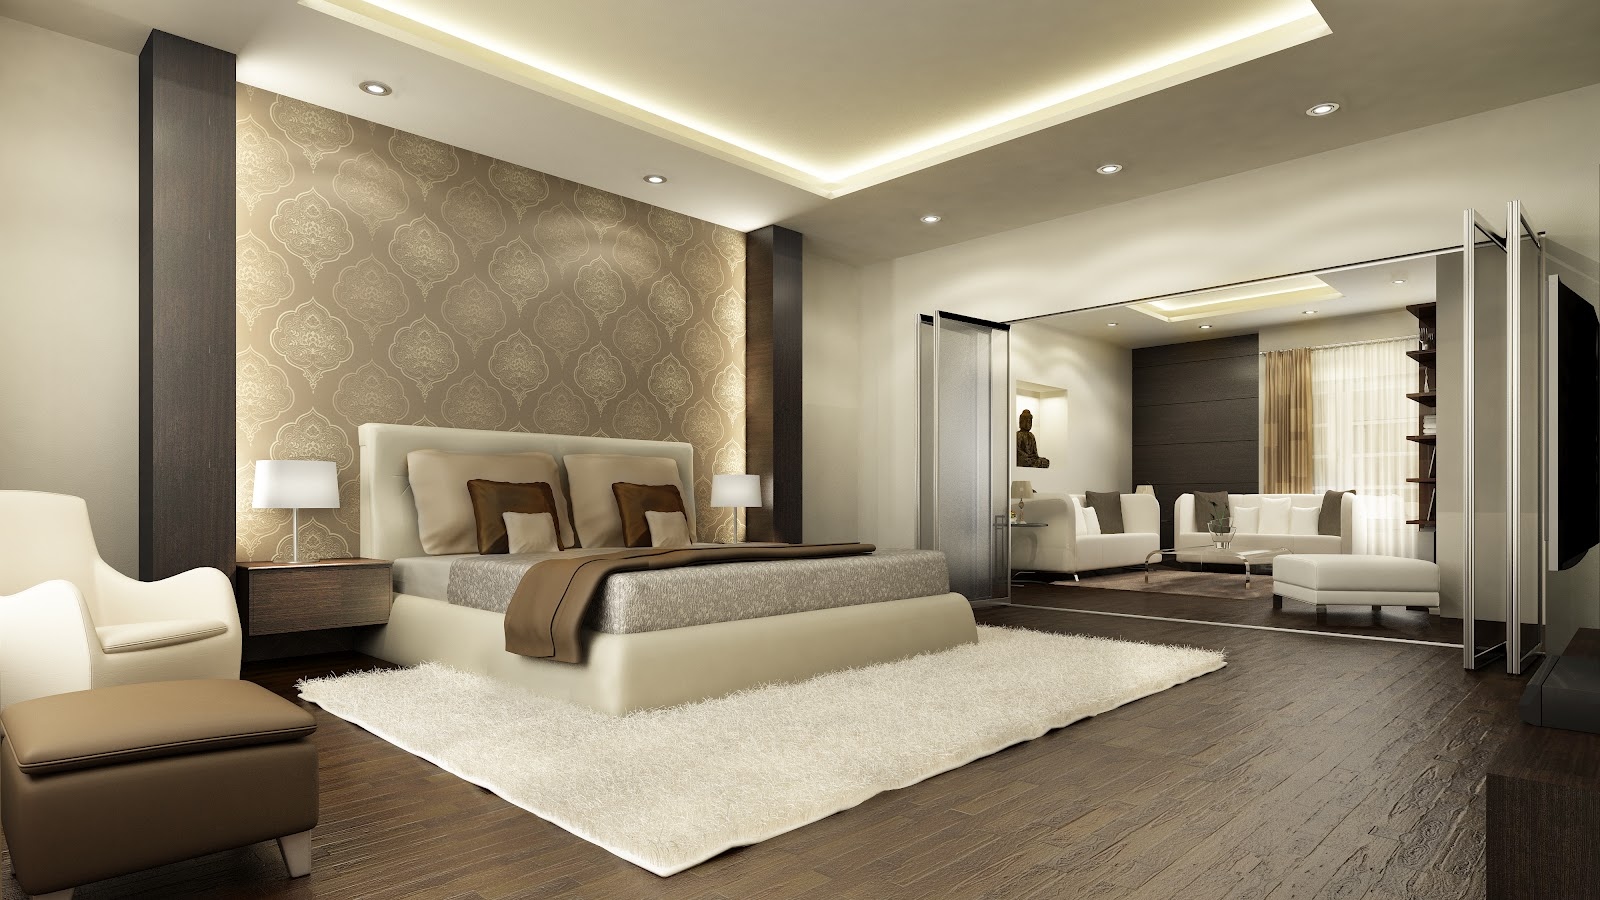 Buy luxury property flats homes for sale for Interior decorating ideas for master bedroom